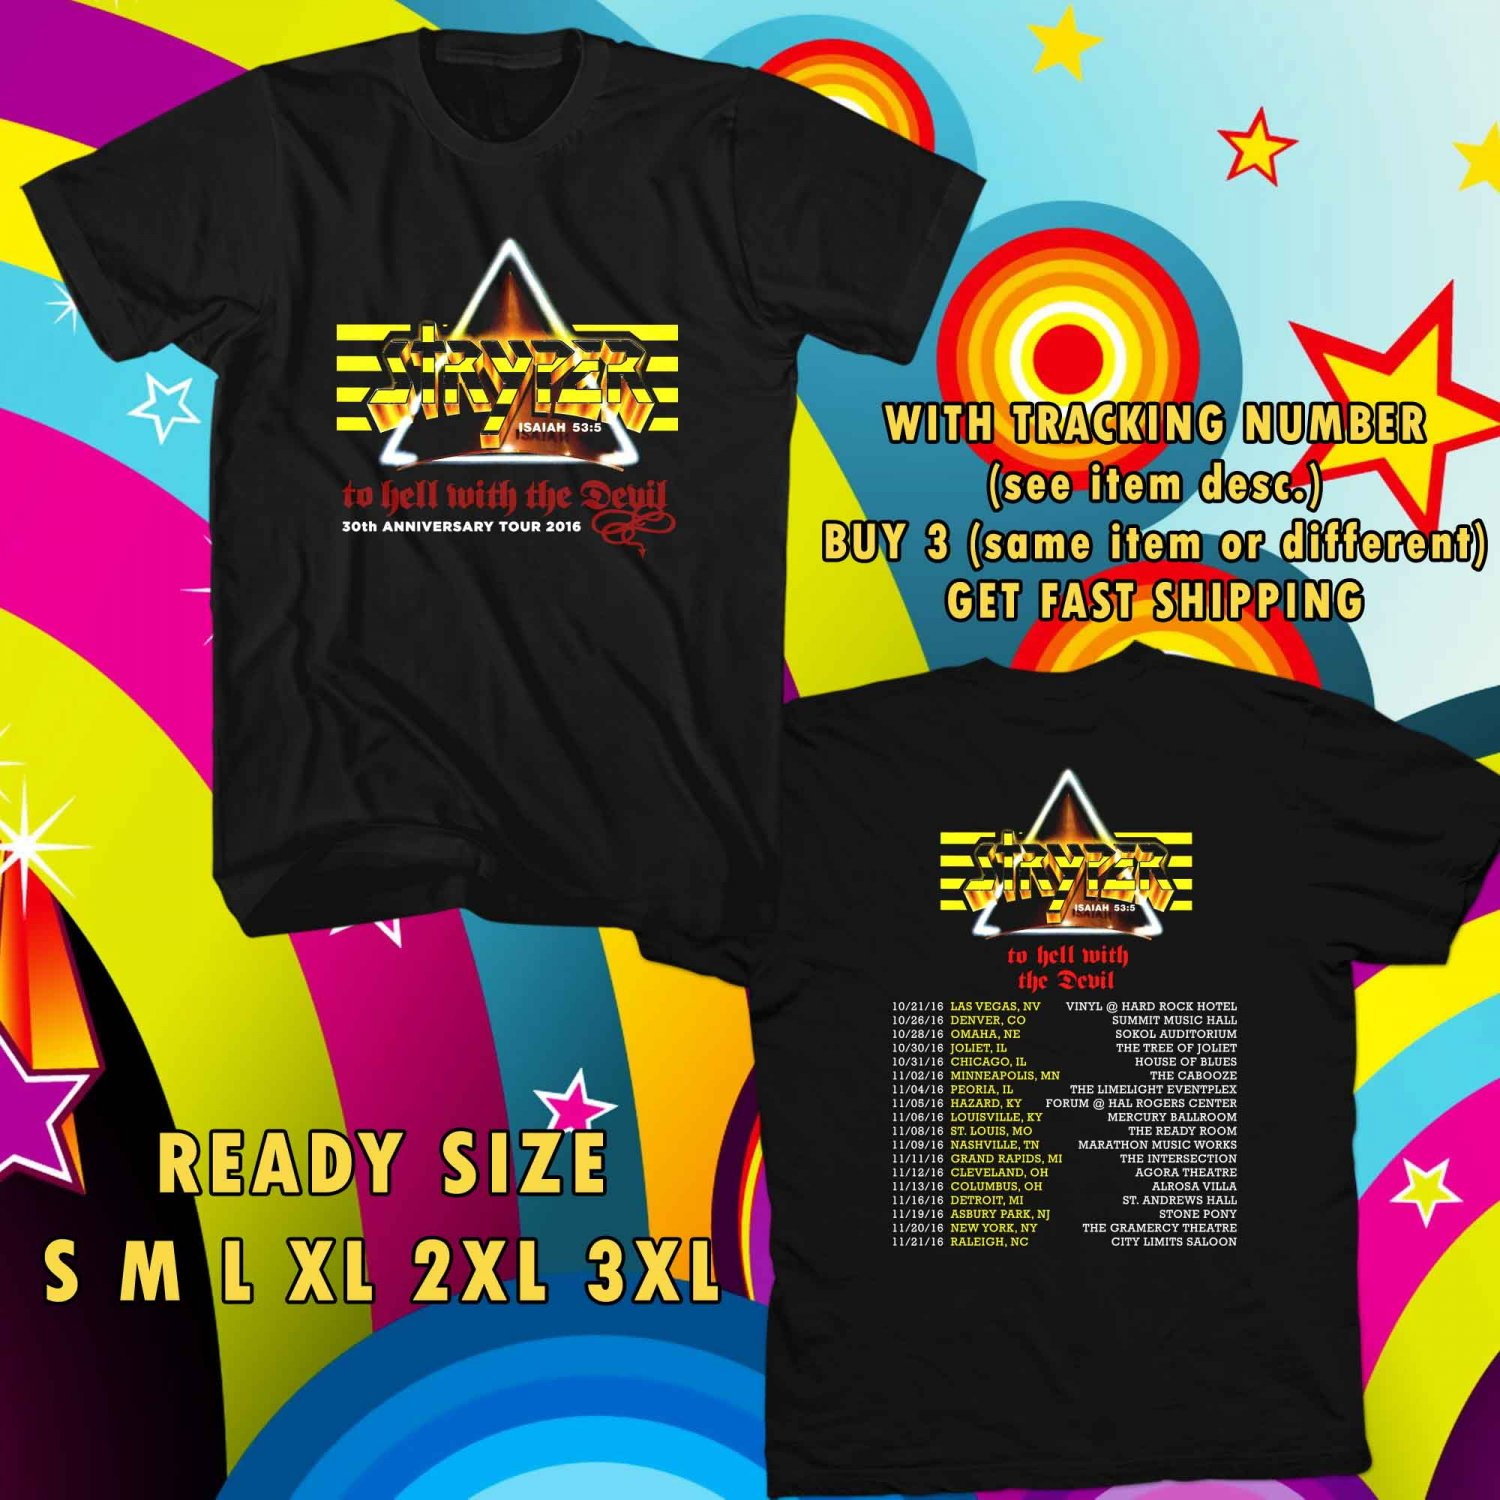 WOW 30TH ANNIVERSARY FROM STRYPER TOUR 2016 BLACK TEE S-3XL ASTR